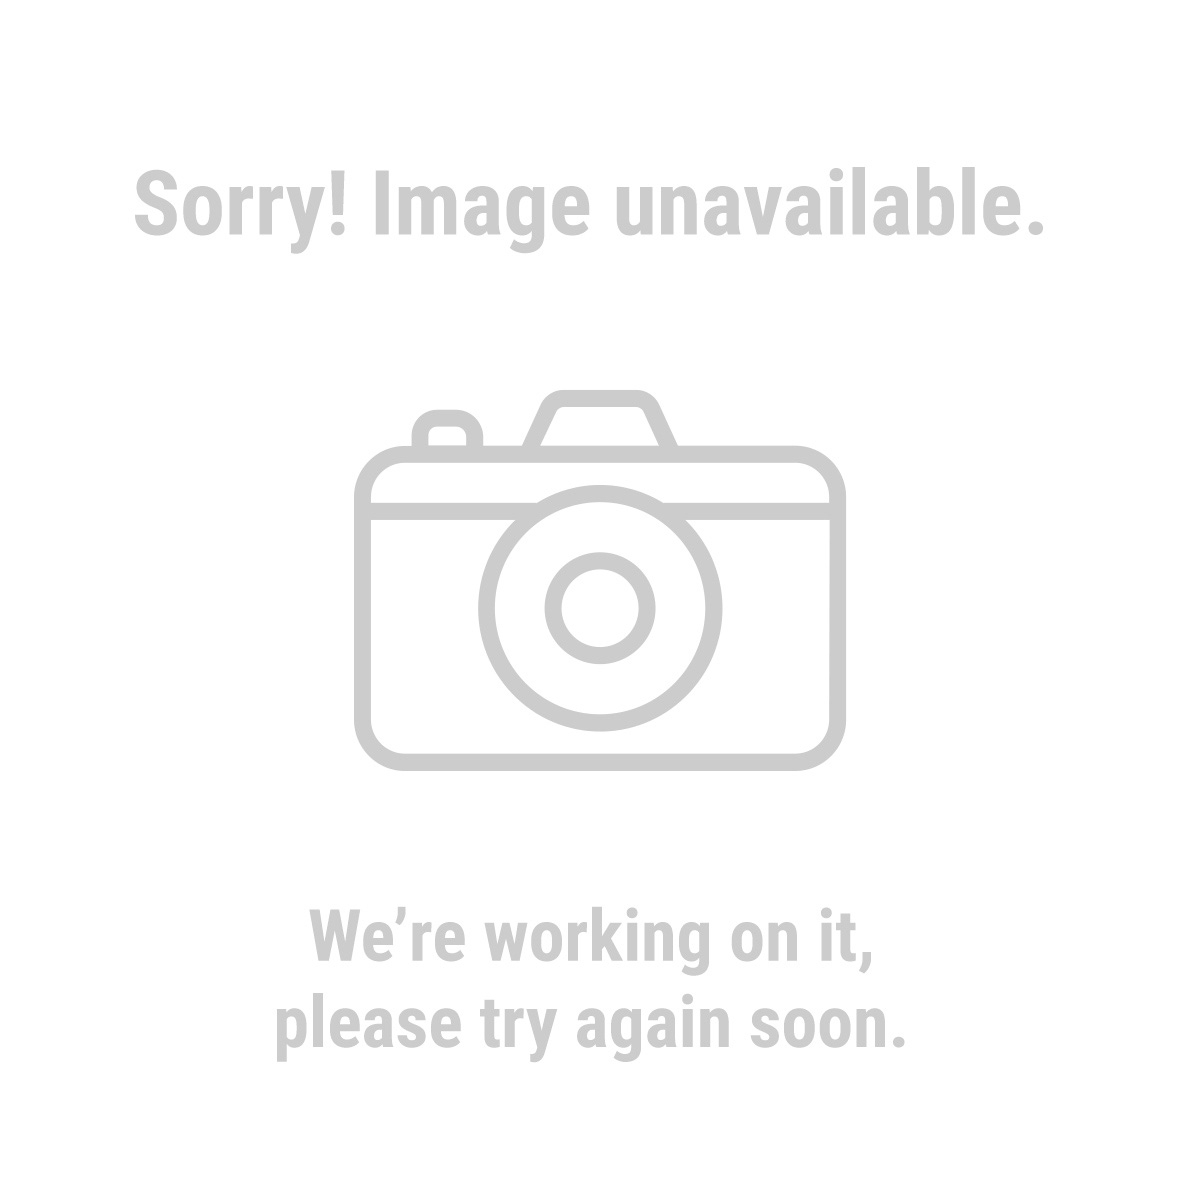 HFT 60270 25 Ft. x 12 Gauge Outdoor Extension Cord